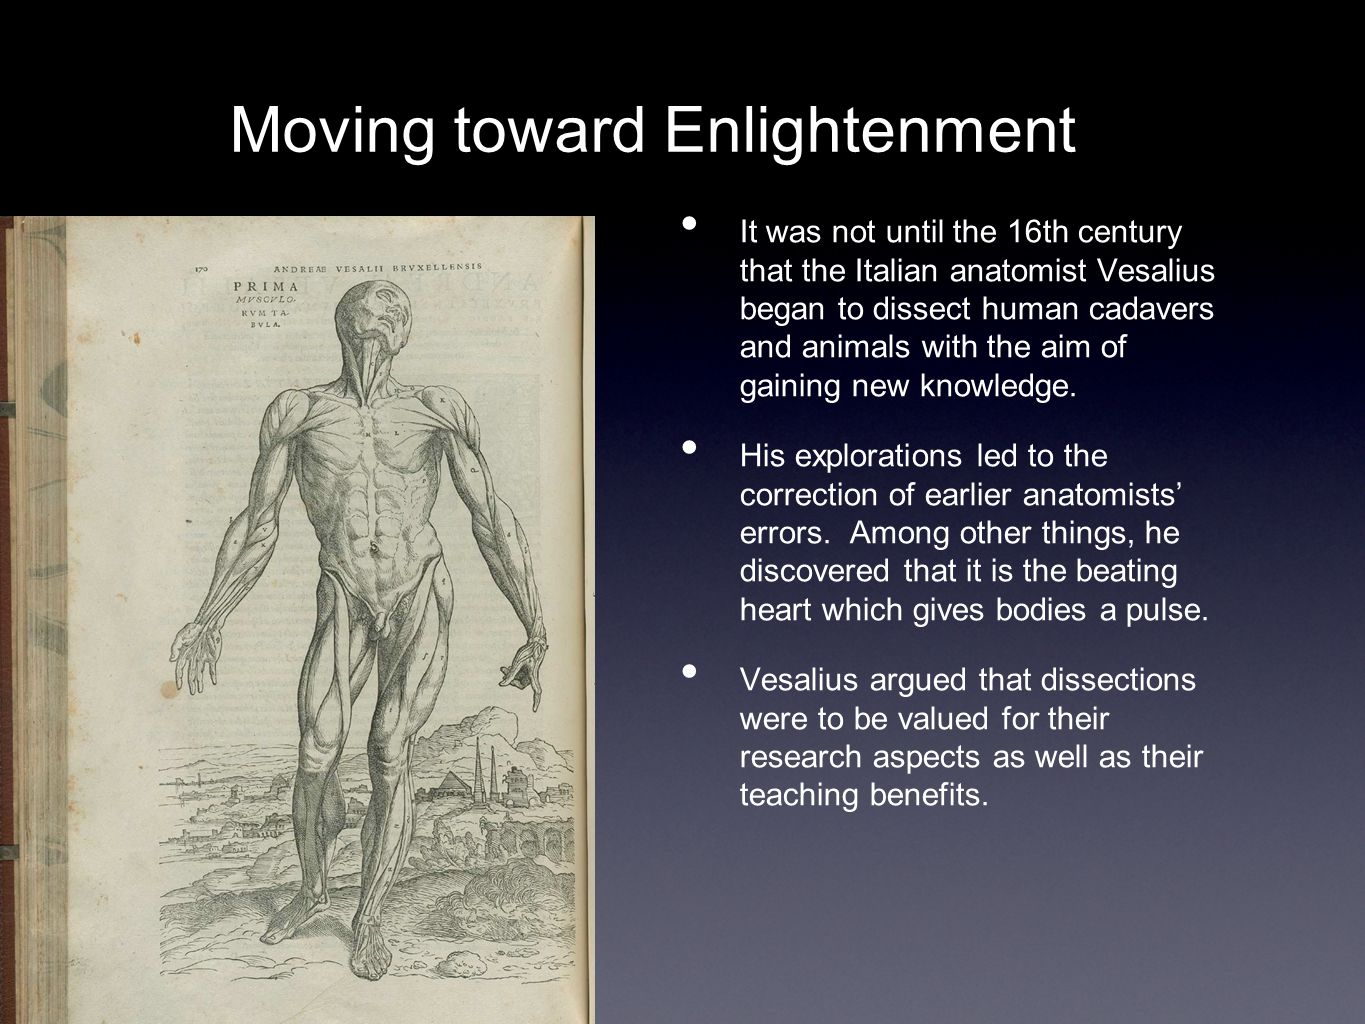 Moving toward Enlightenment It was not until the 16th century that the Italian anatomist Vesalius began to dissect human cadavers and animals with the